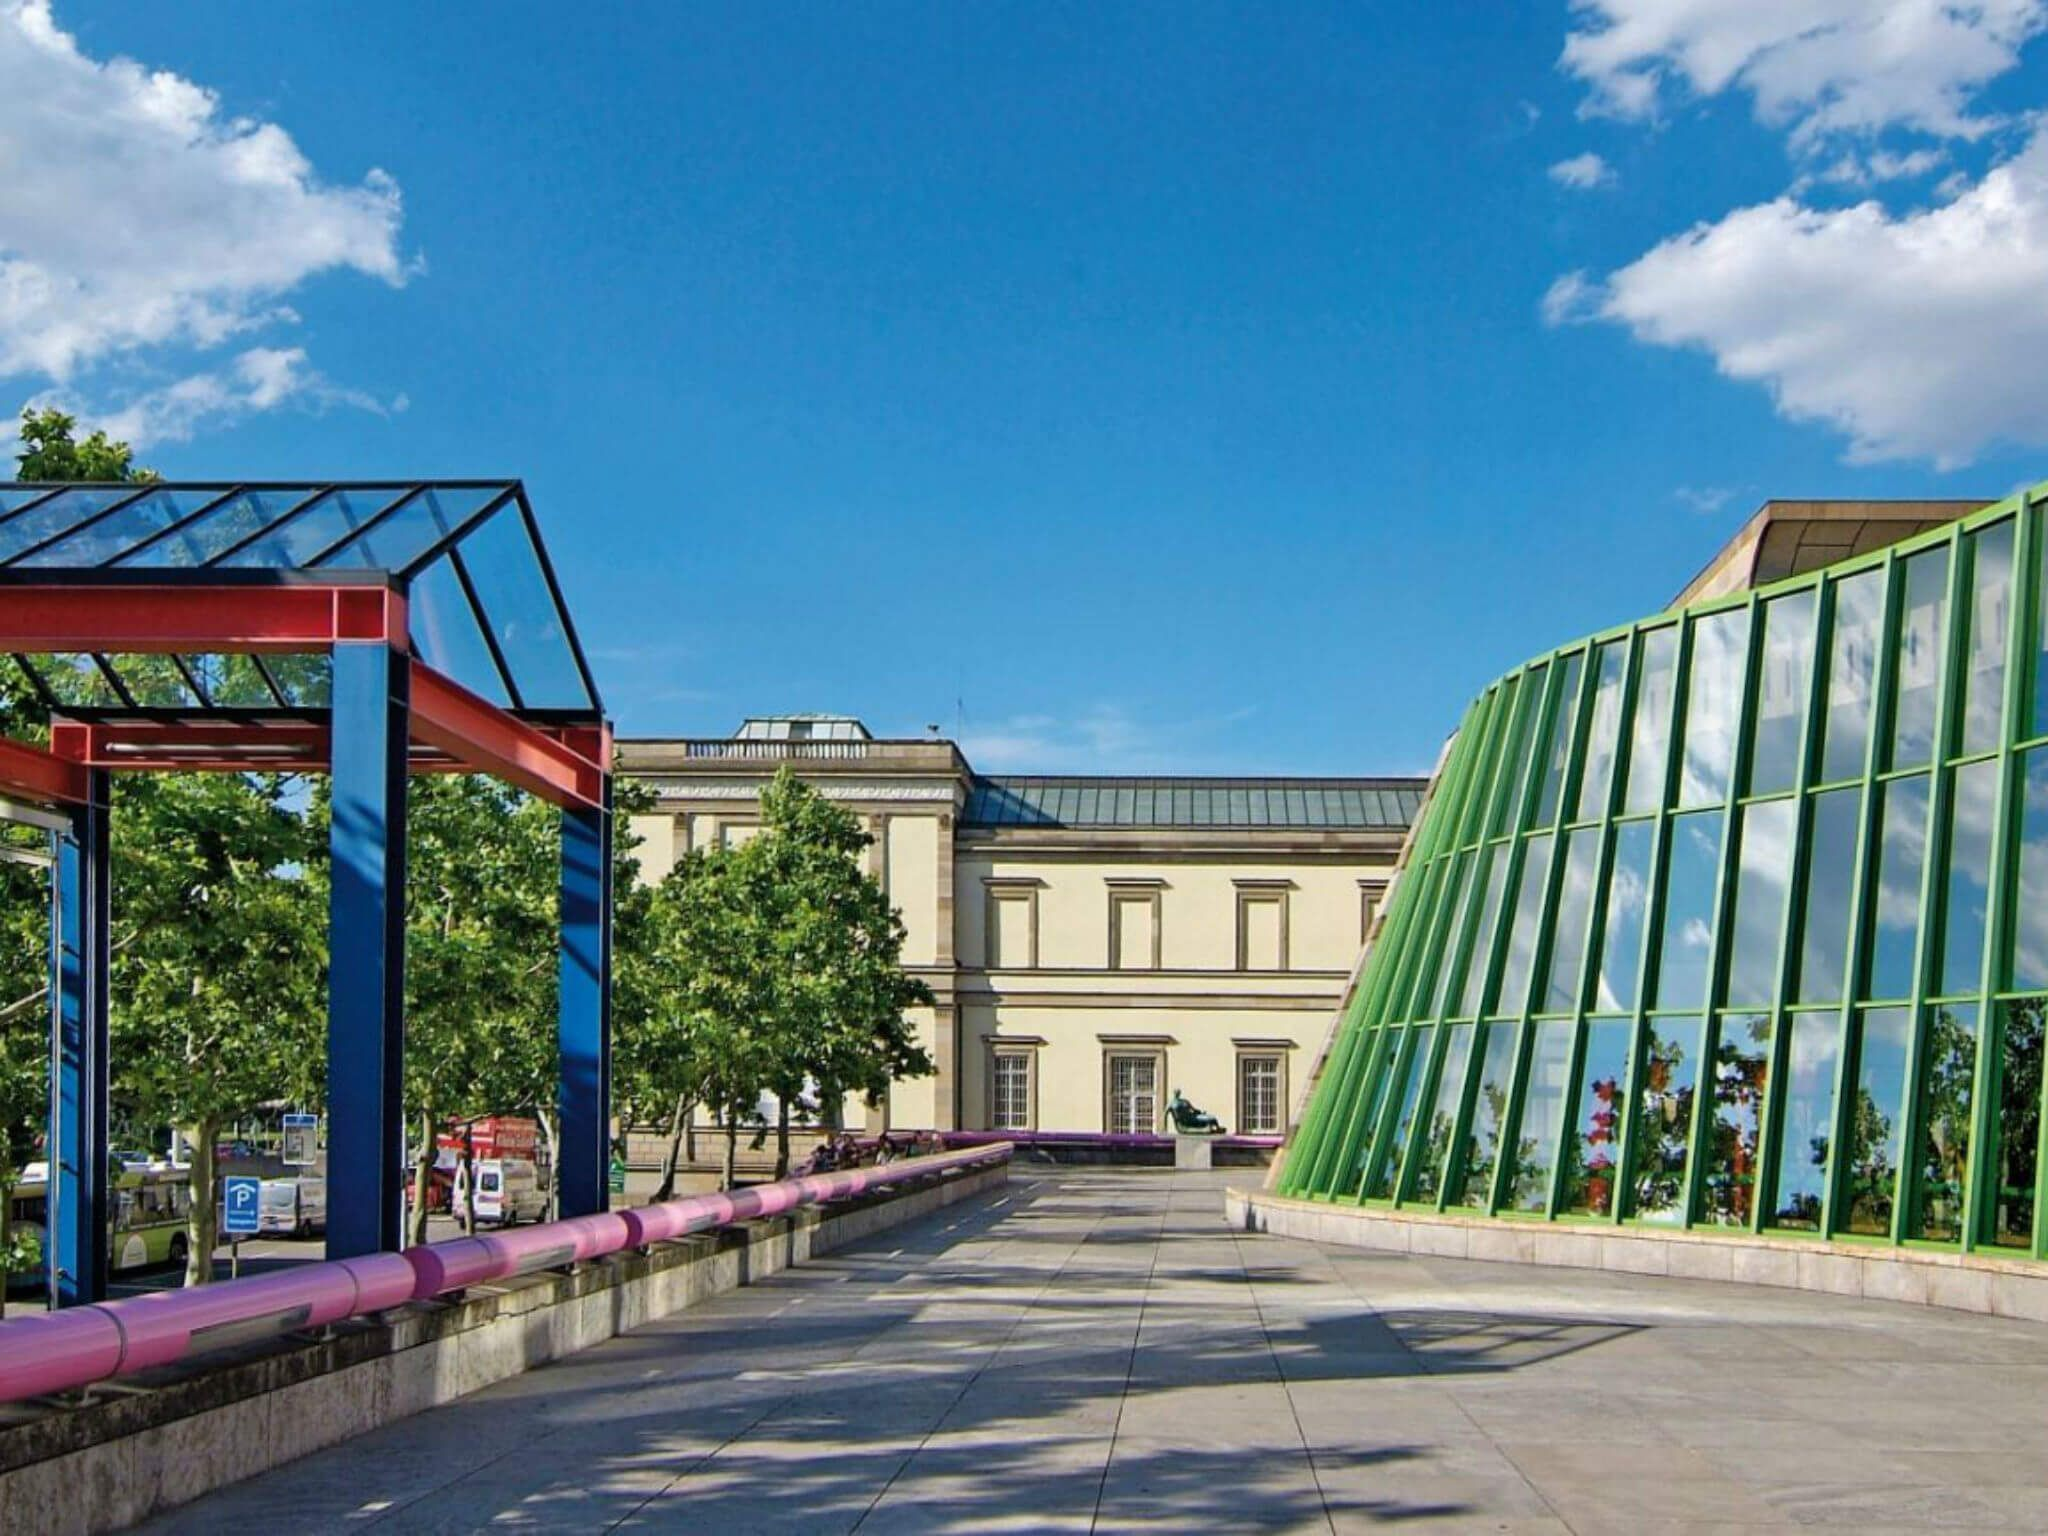 Sightseeing in Stuttgart Staatsgalerie